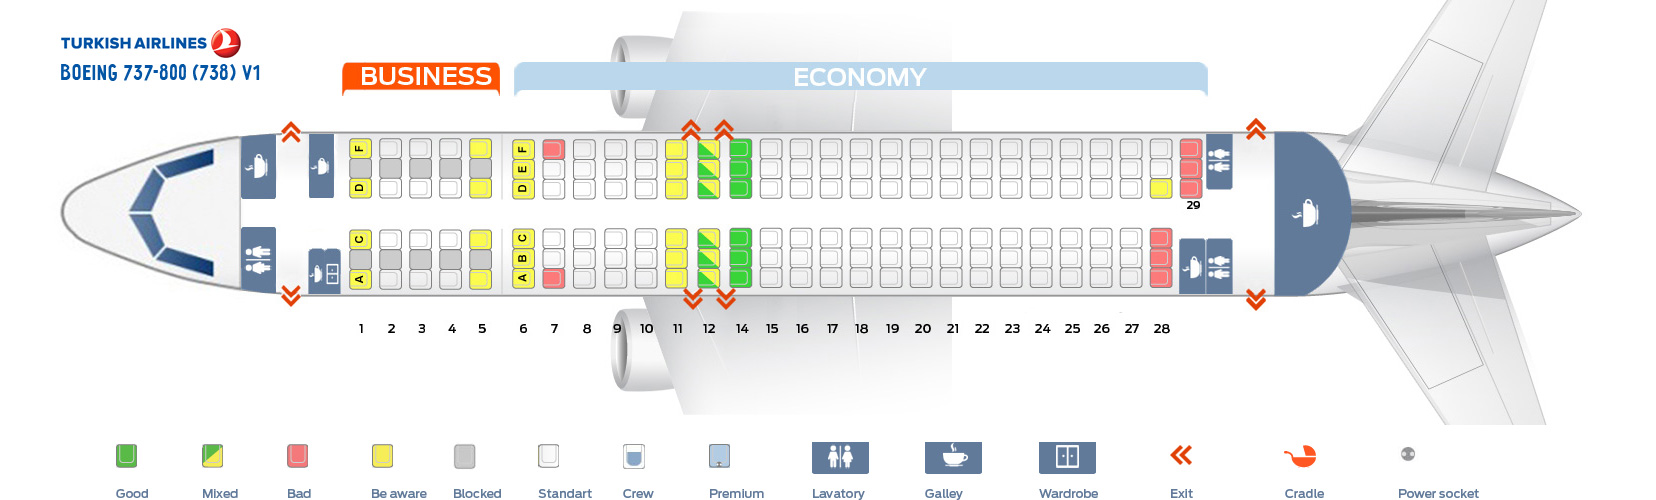 Boeing 737 Seat Map Seat map Boeing 737 800 Turkish Airlines. Best seats in the plane Boeing 737 Seat Map